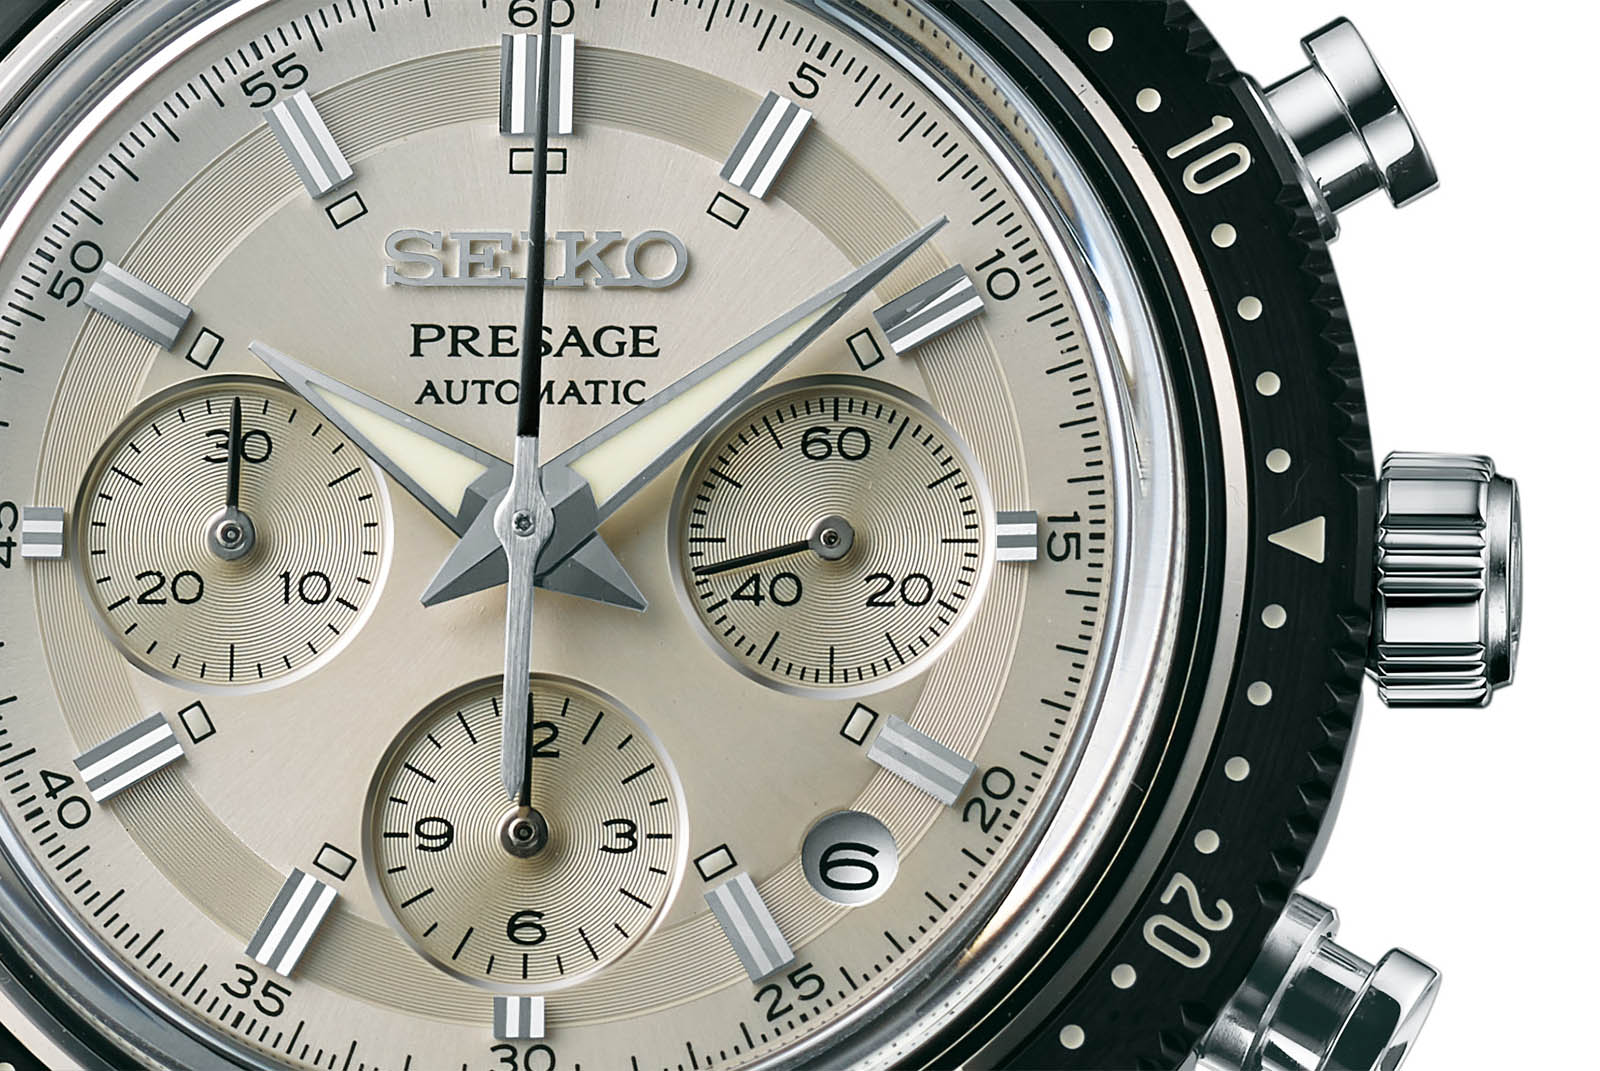 Seiko Presage Chronograph 55th Anniversary Limited Edition ref. SRQ031